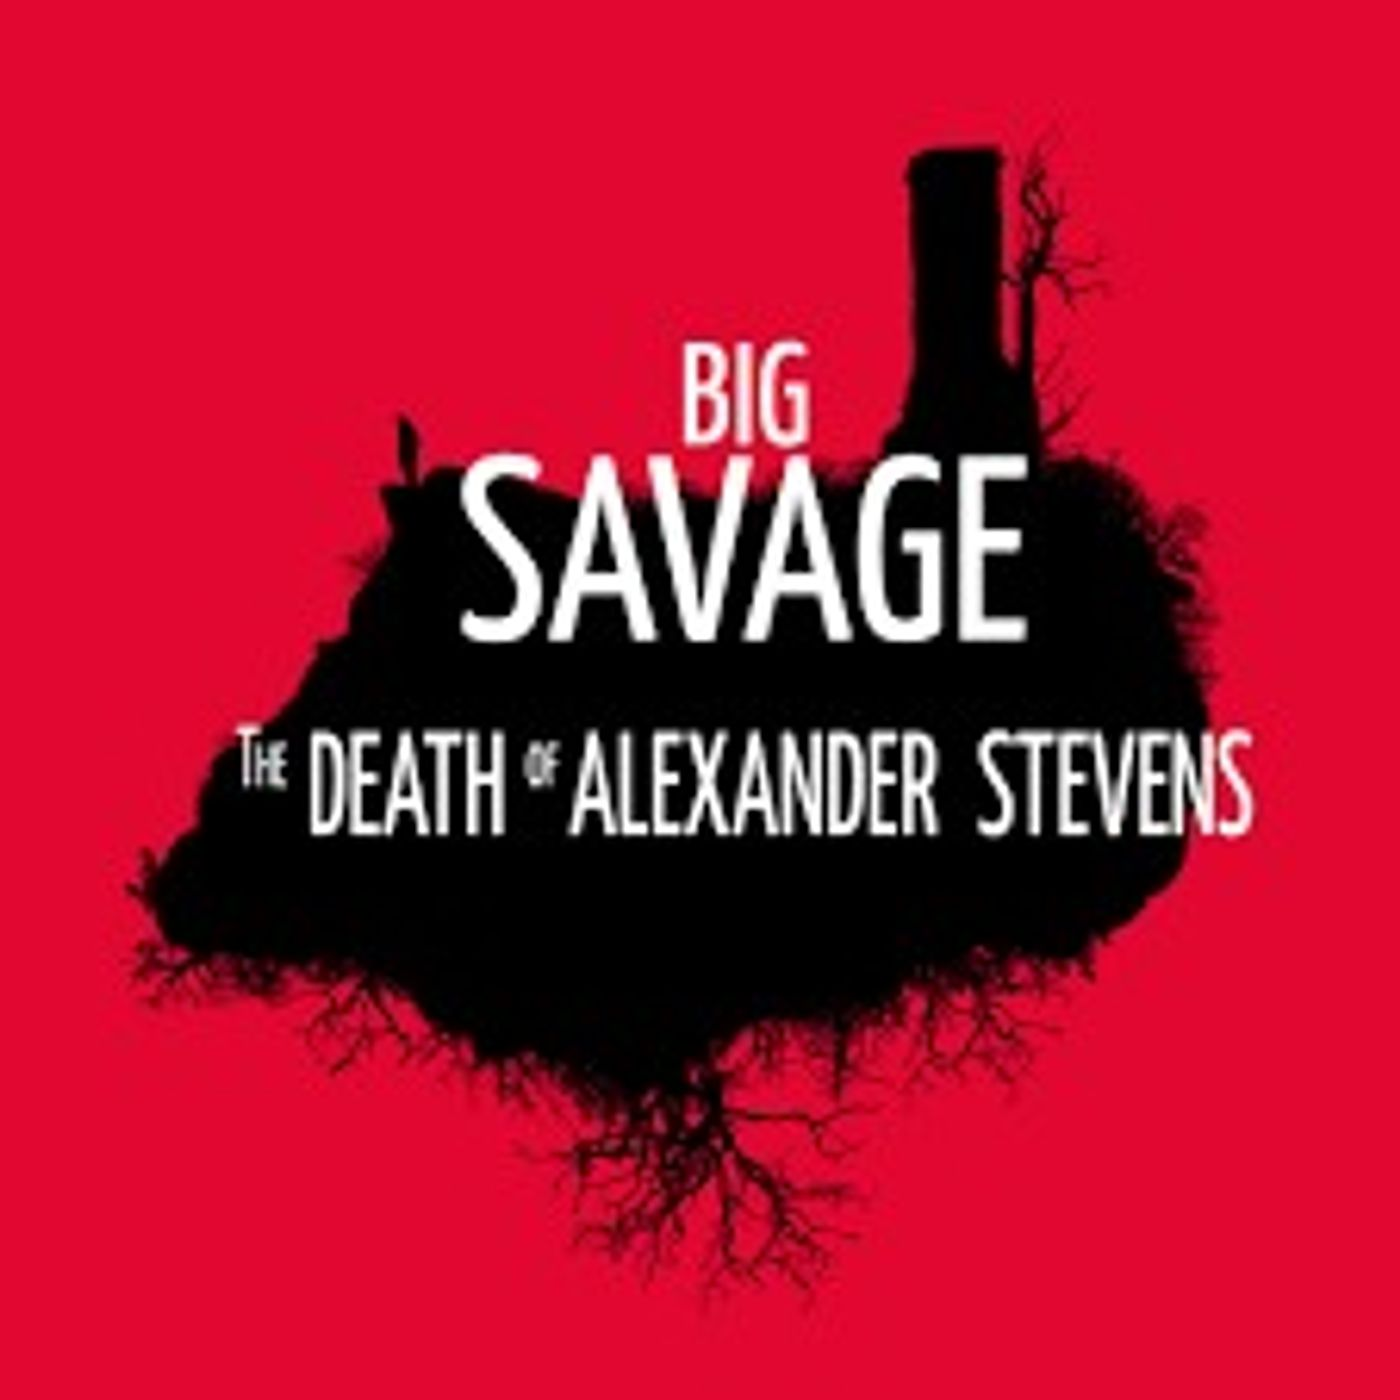 A Significant Event | Big Savage: The Death of Alexander Stevens